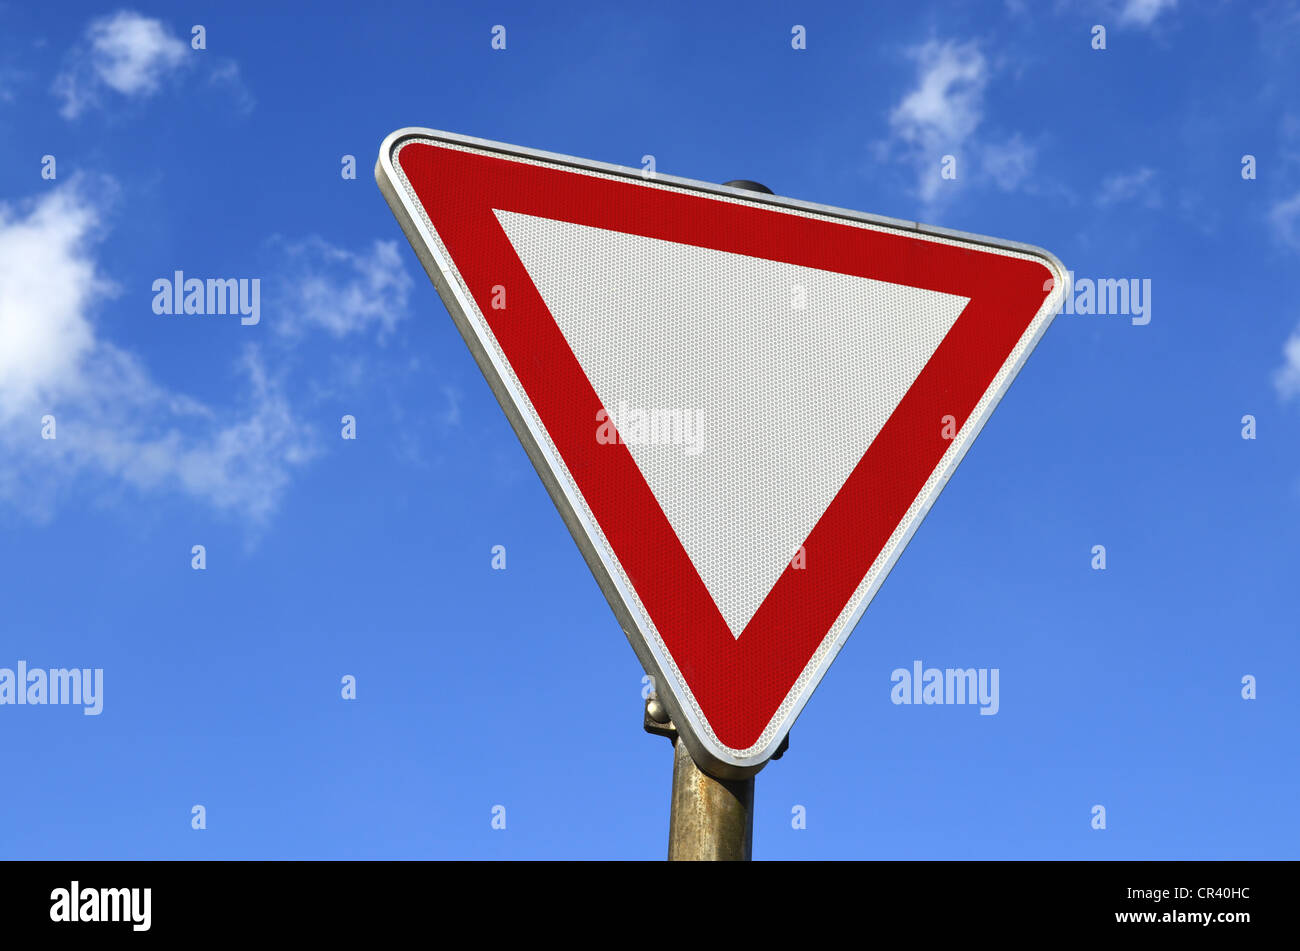 Traffic sign, give way, against a blue sky with clouds - Stock Image